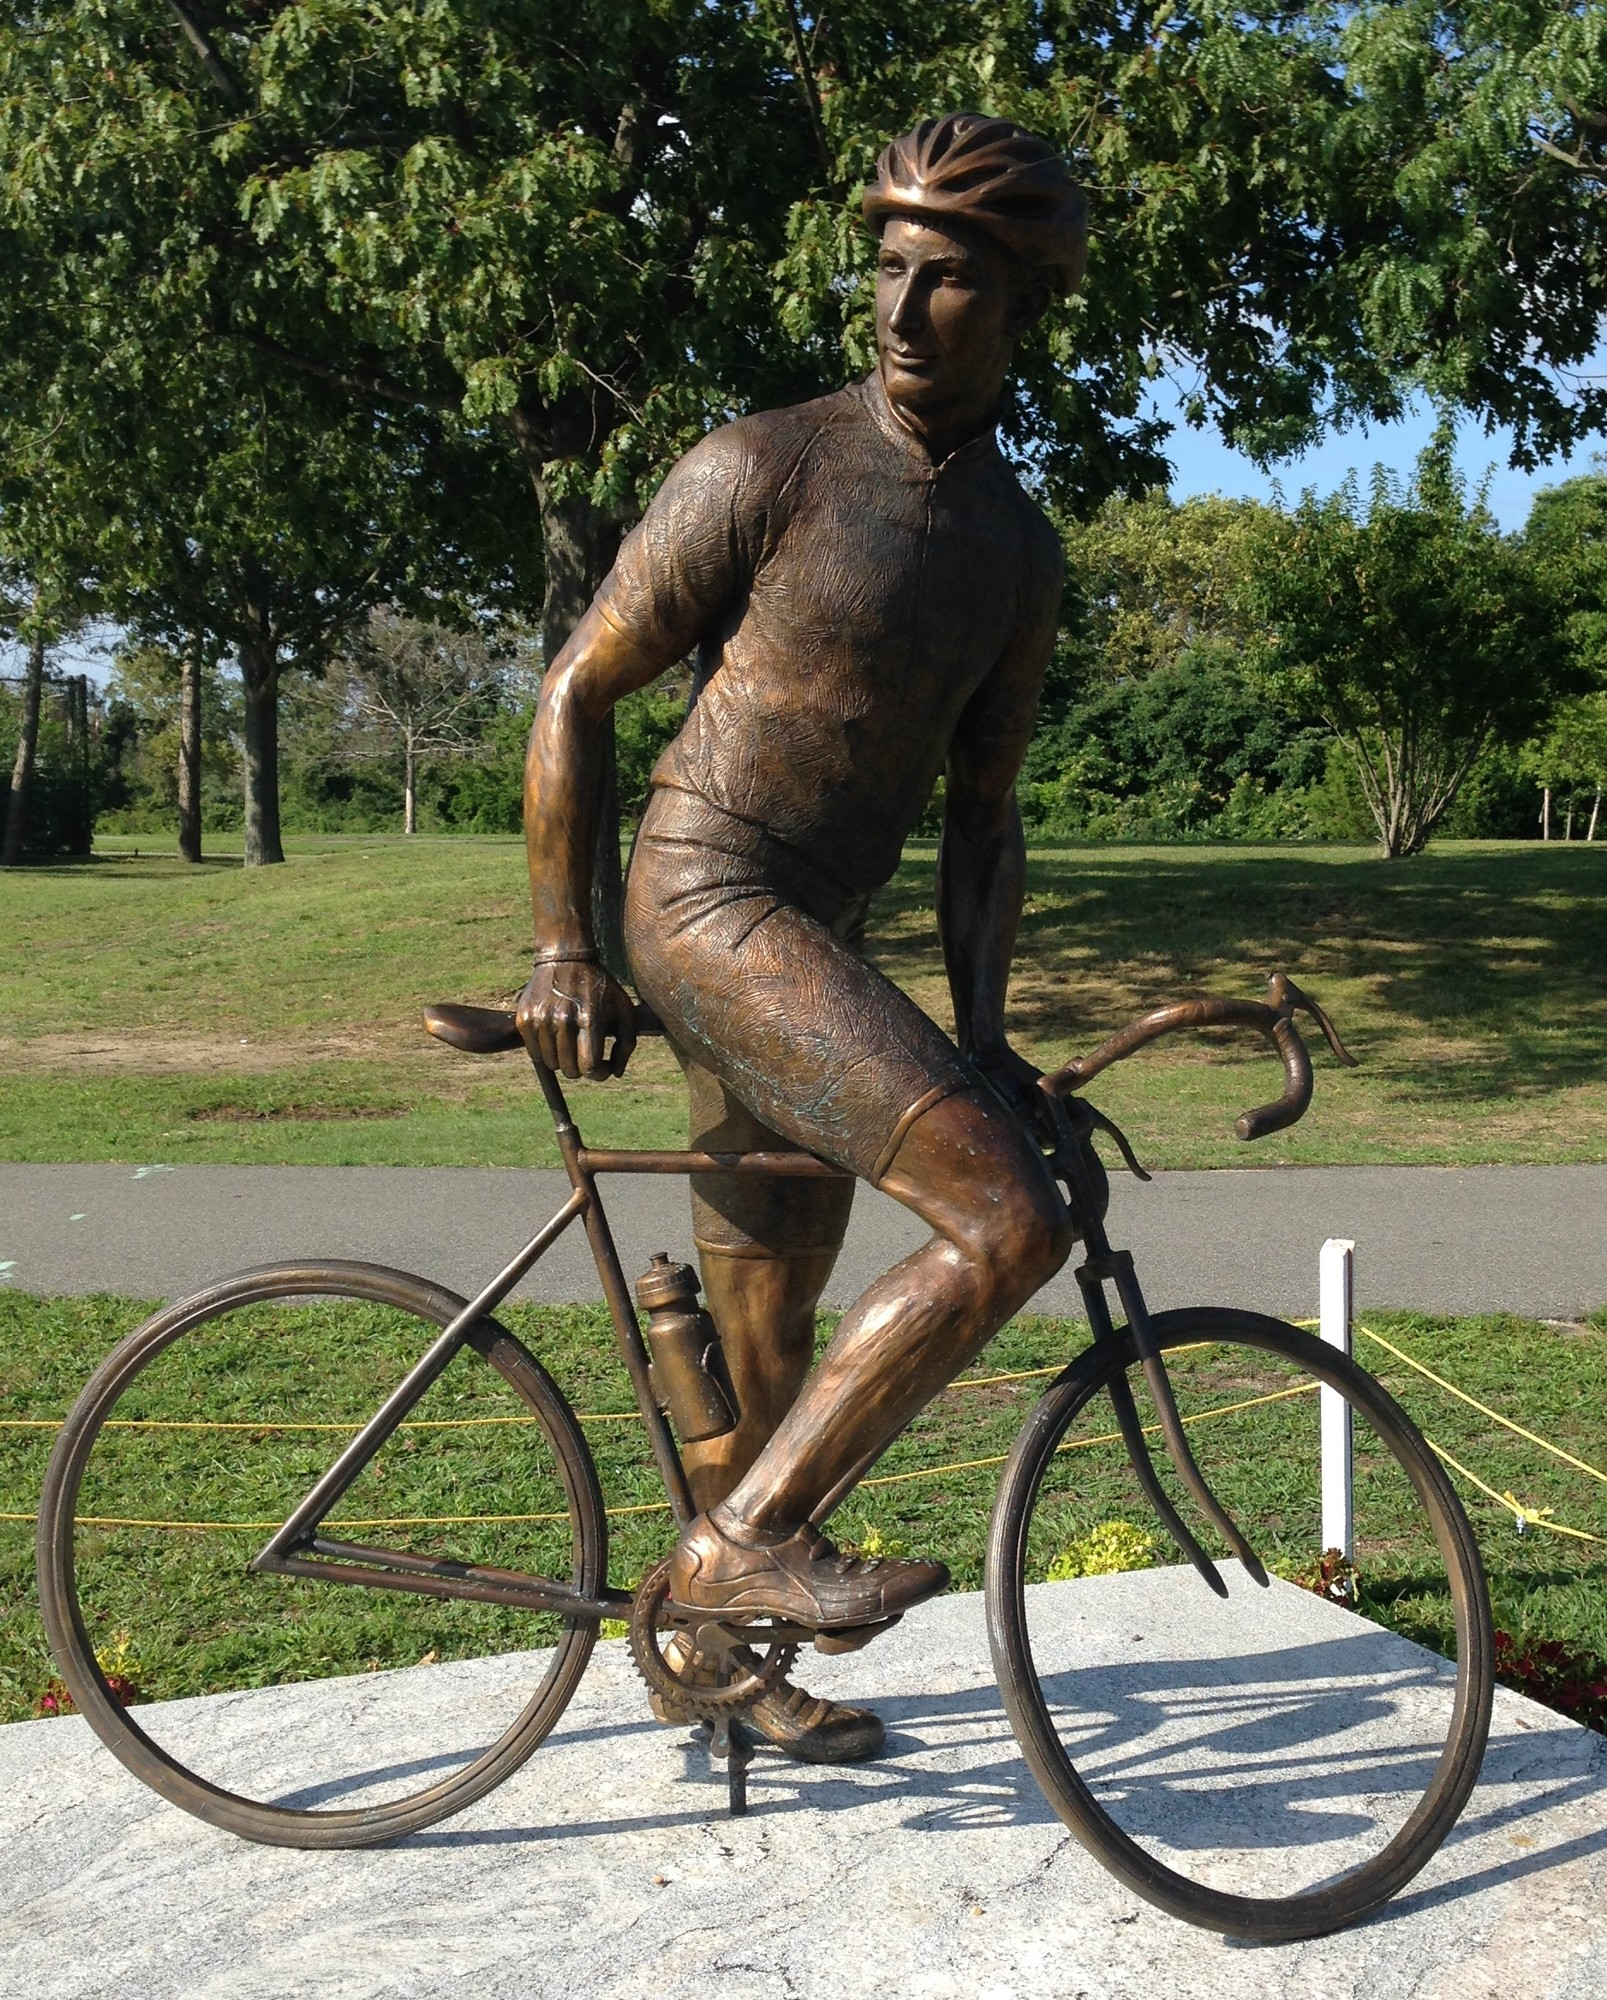 This statue of a cyclist greets bikers when they enter the Wantagh Parkway trail from Cedar Creek Park.